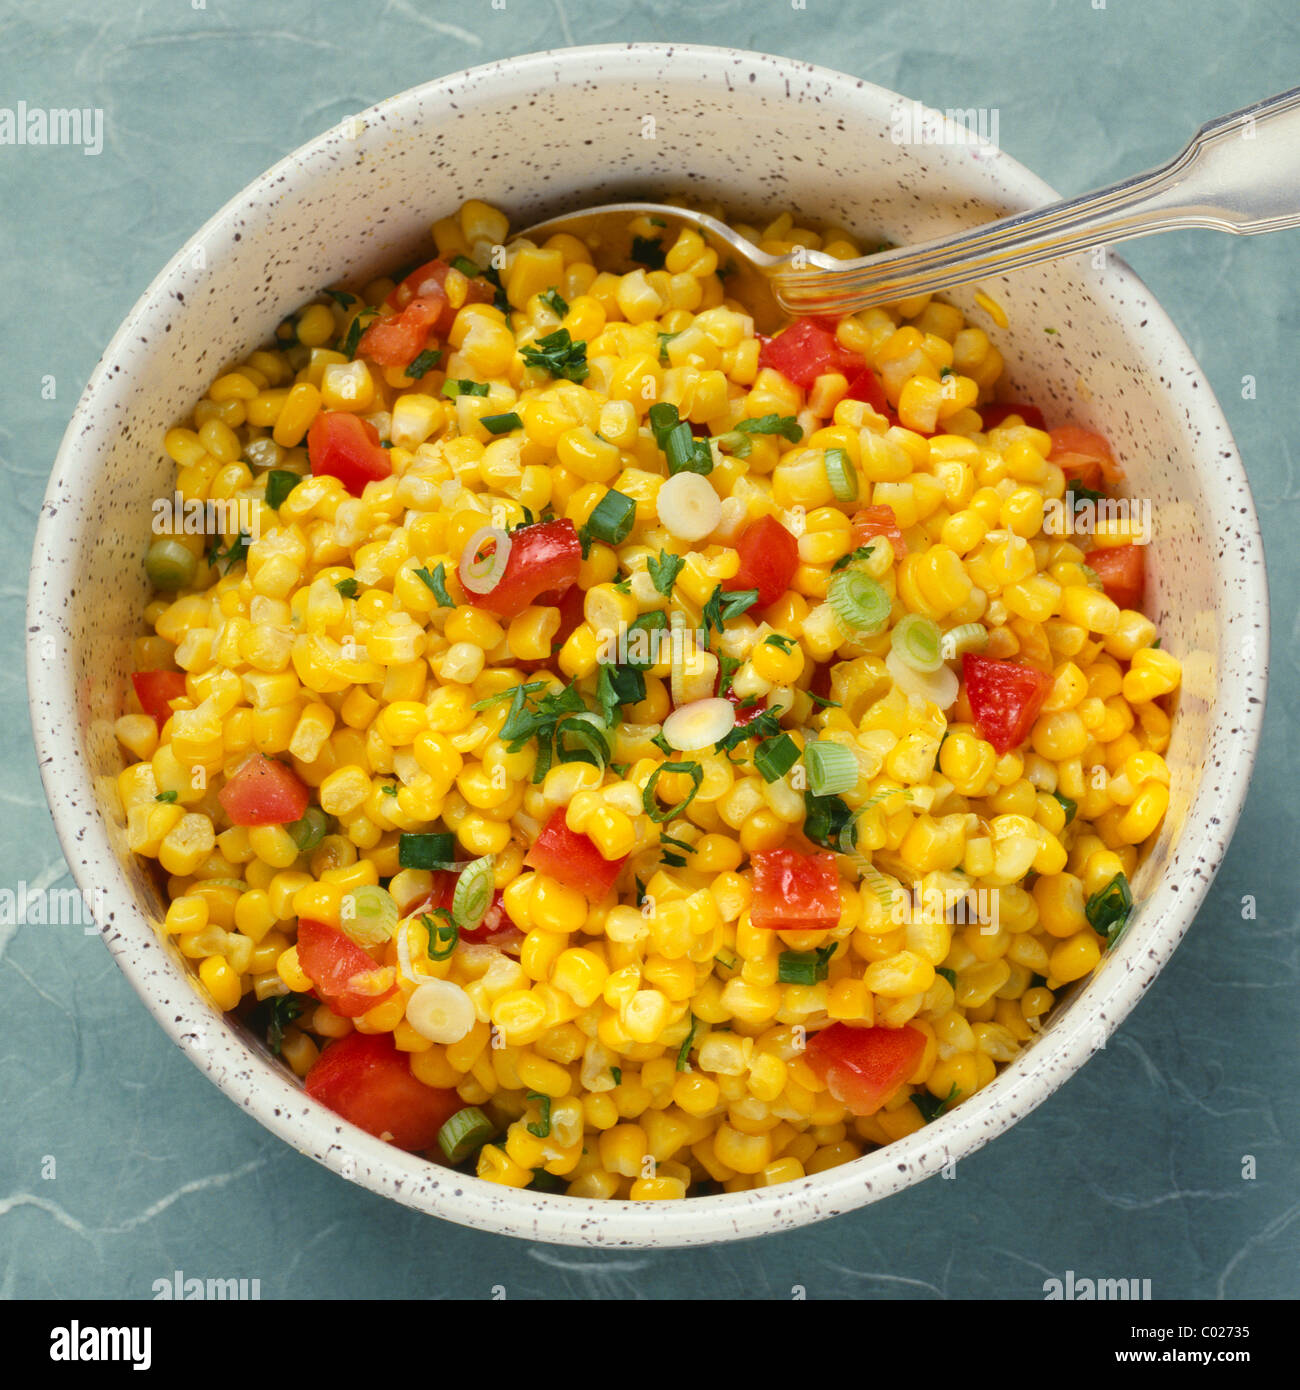 corn relish in bowl with spoon - Stock Image